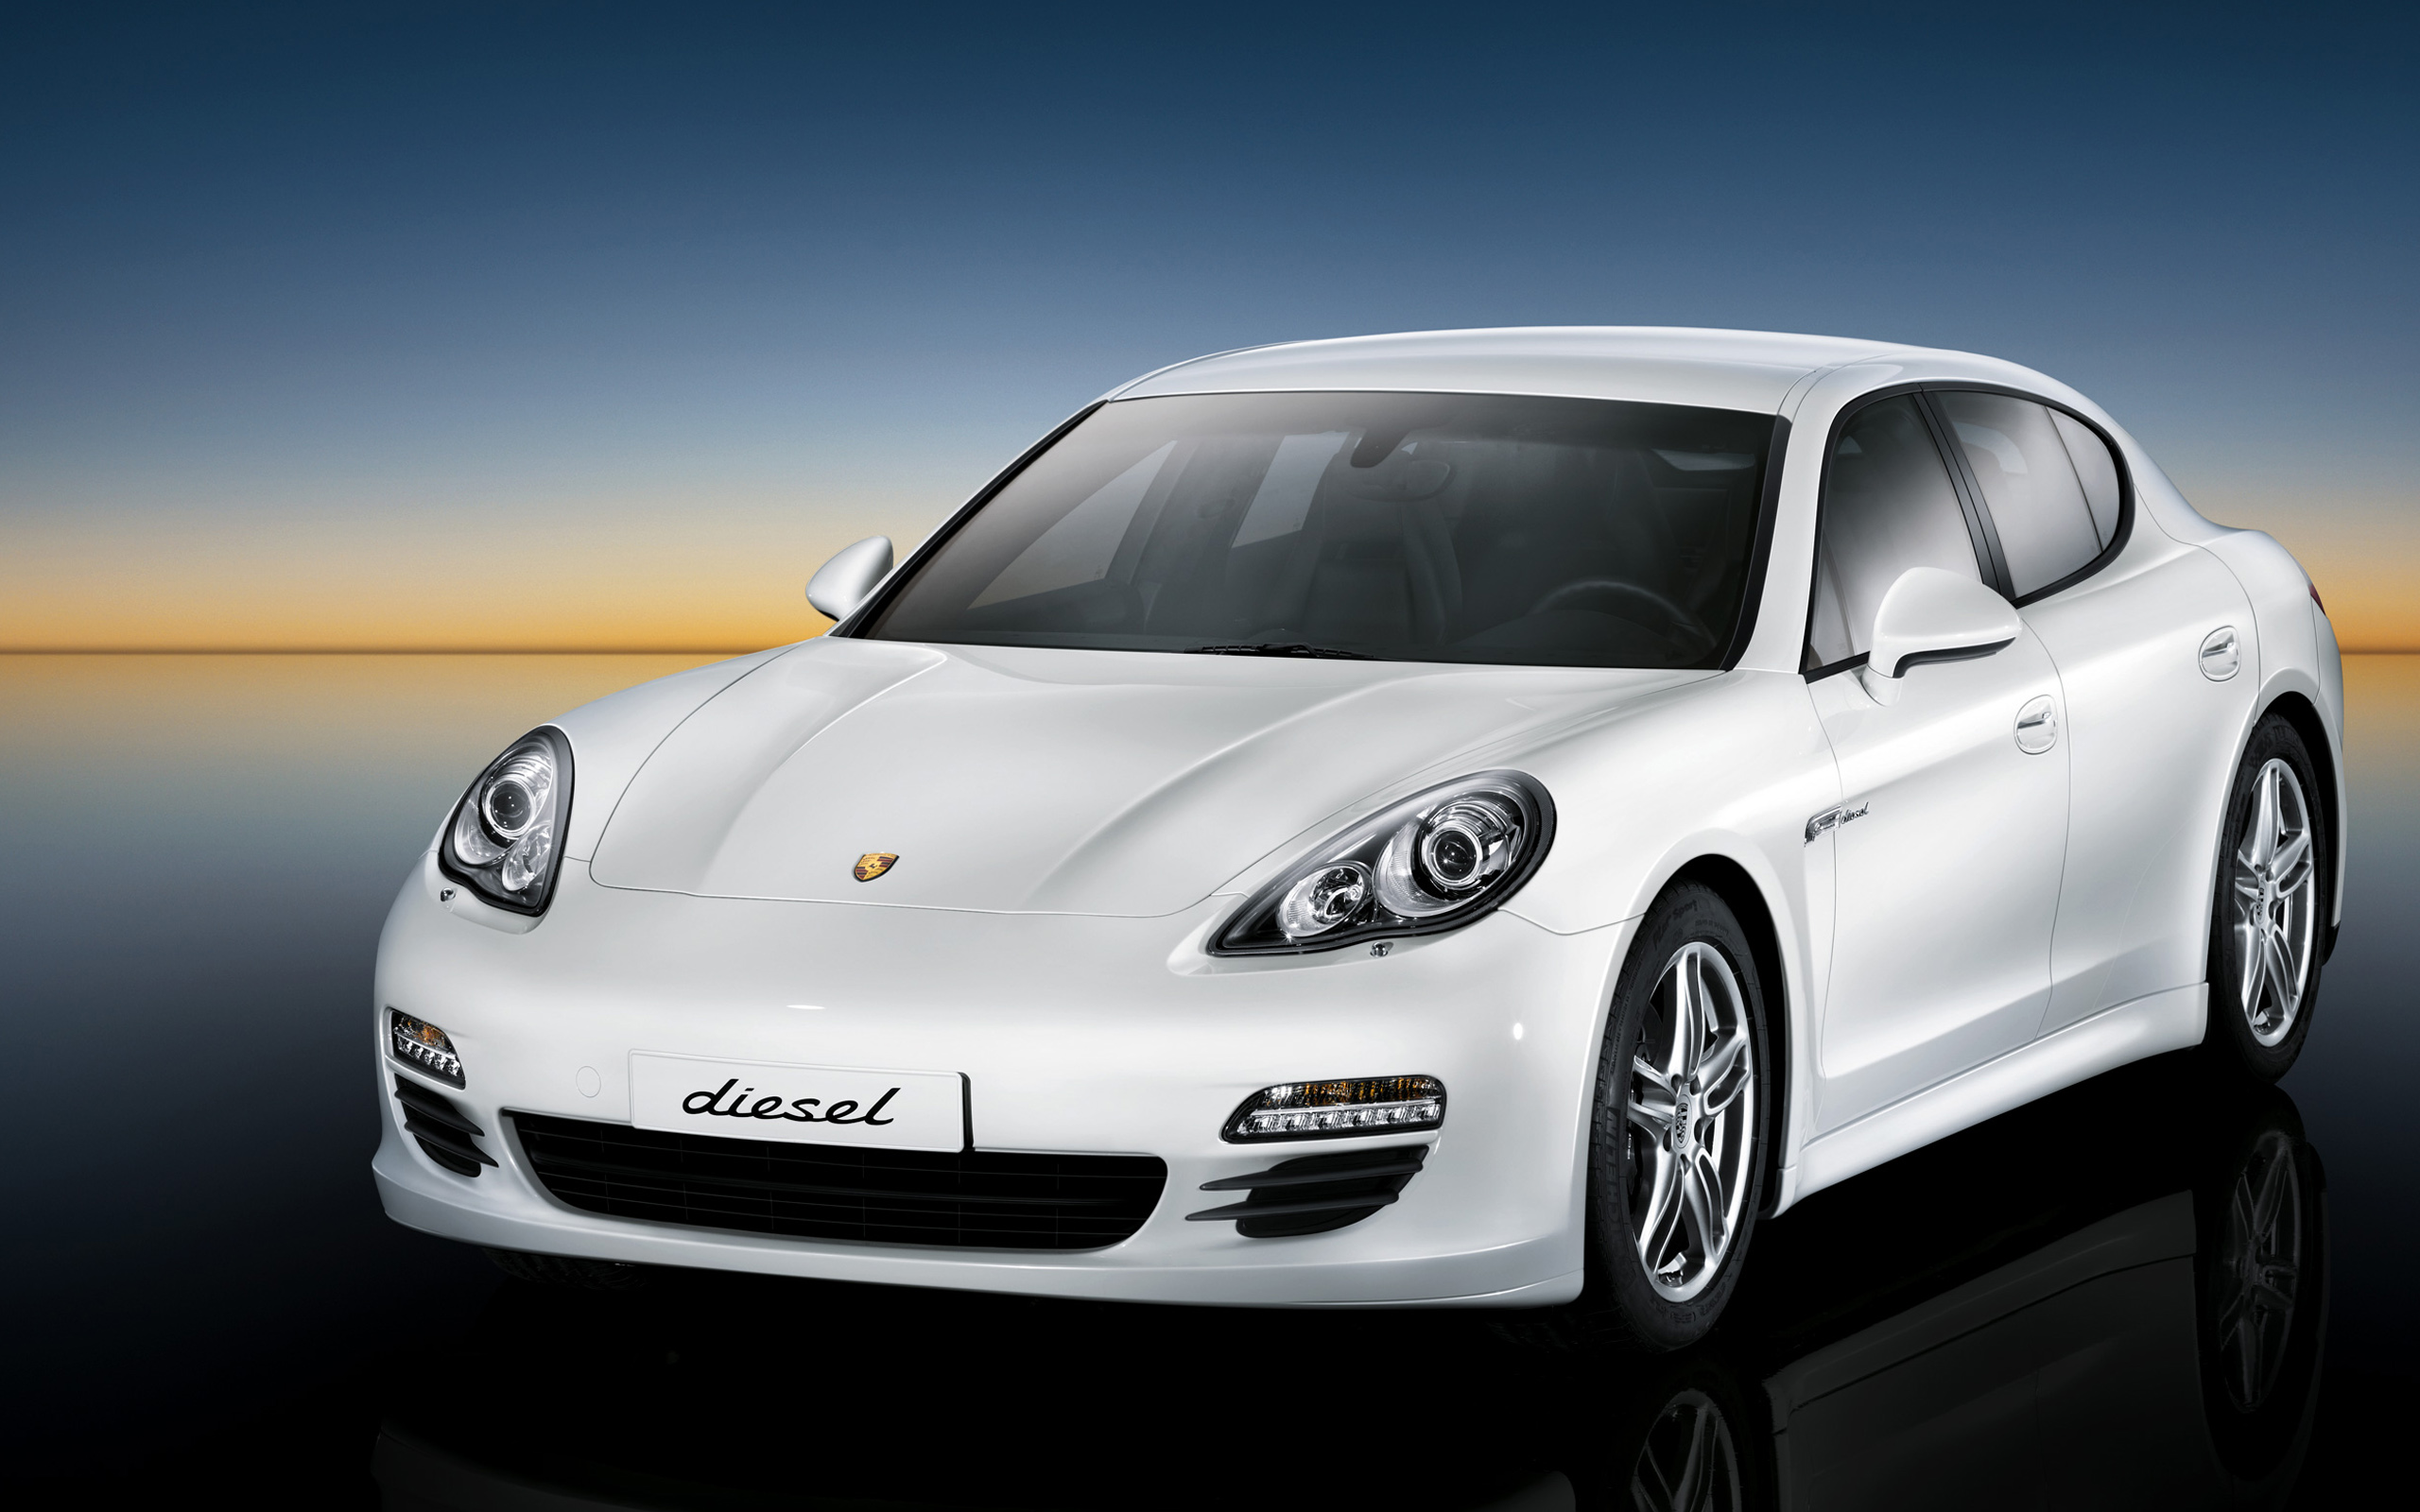 Porsche Panamera Diesel Wallpaper HD Car Wallpapers 2560x1600